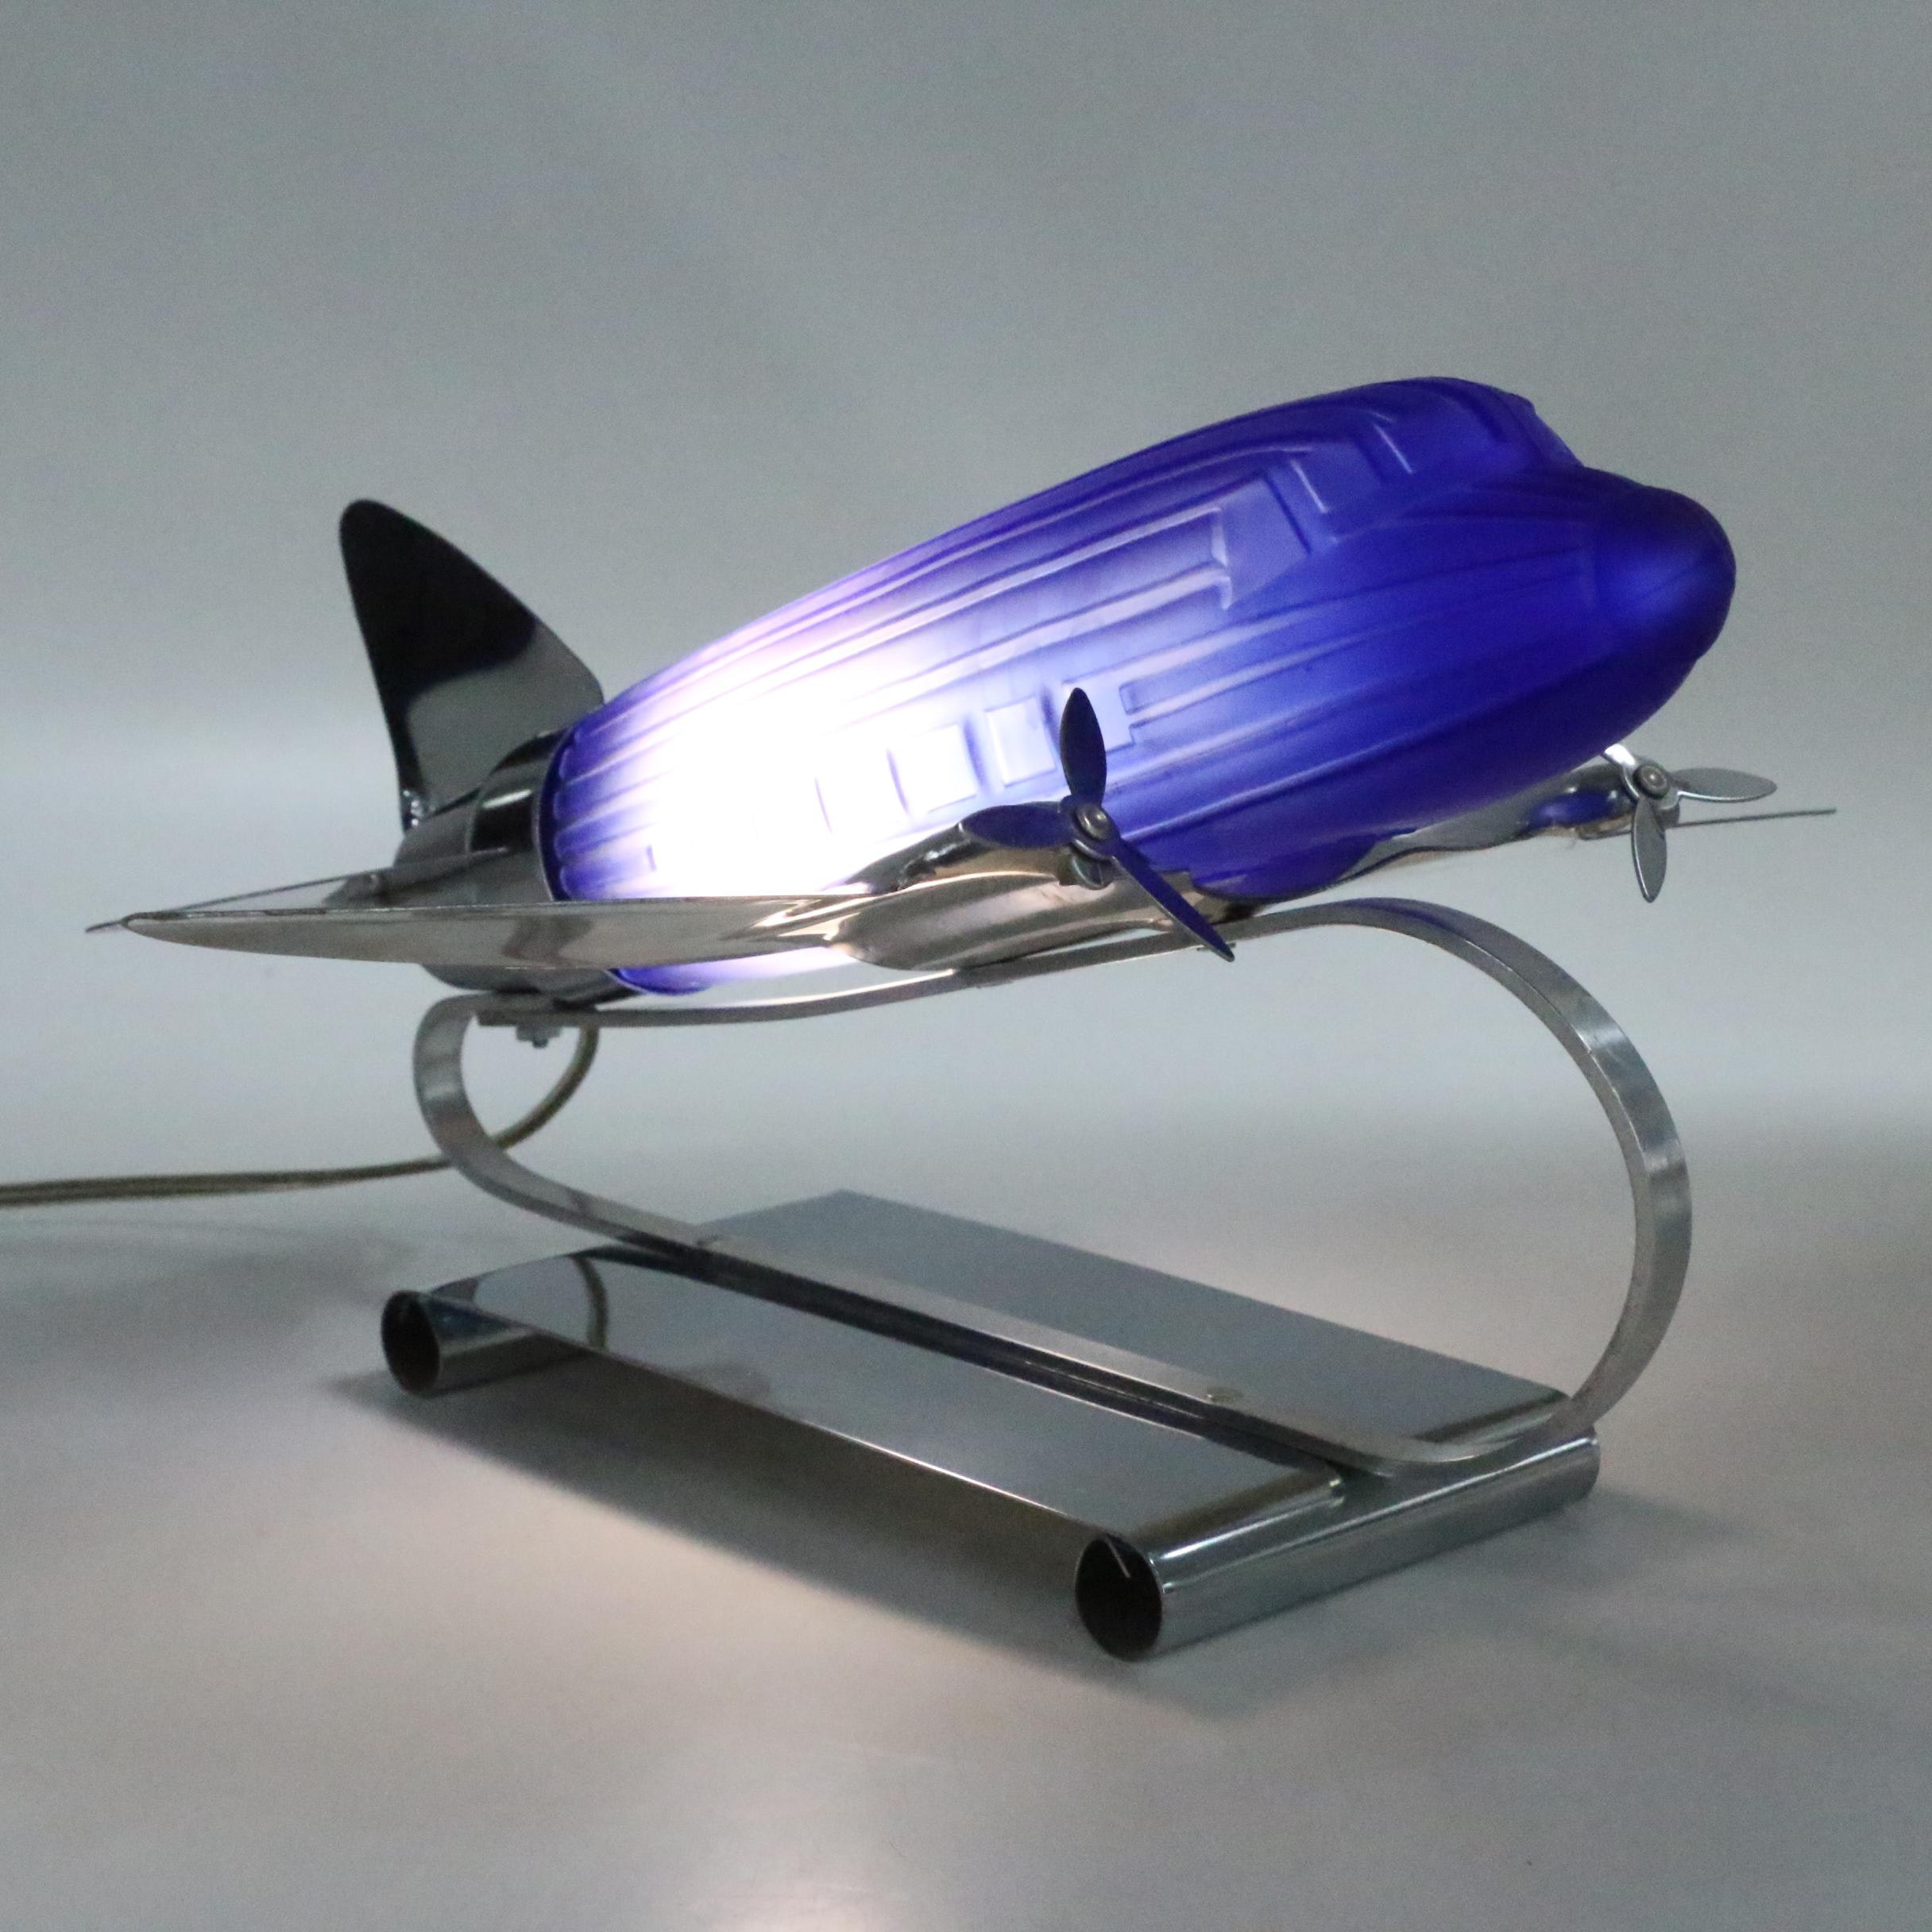 Art Deco Frosted Blue Glass and Metal Airplane Lamp by Sarsaparilla, 1977